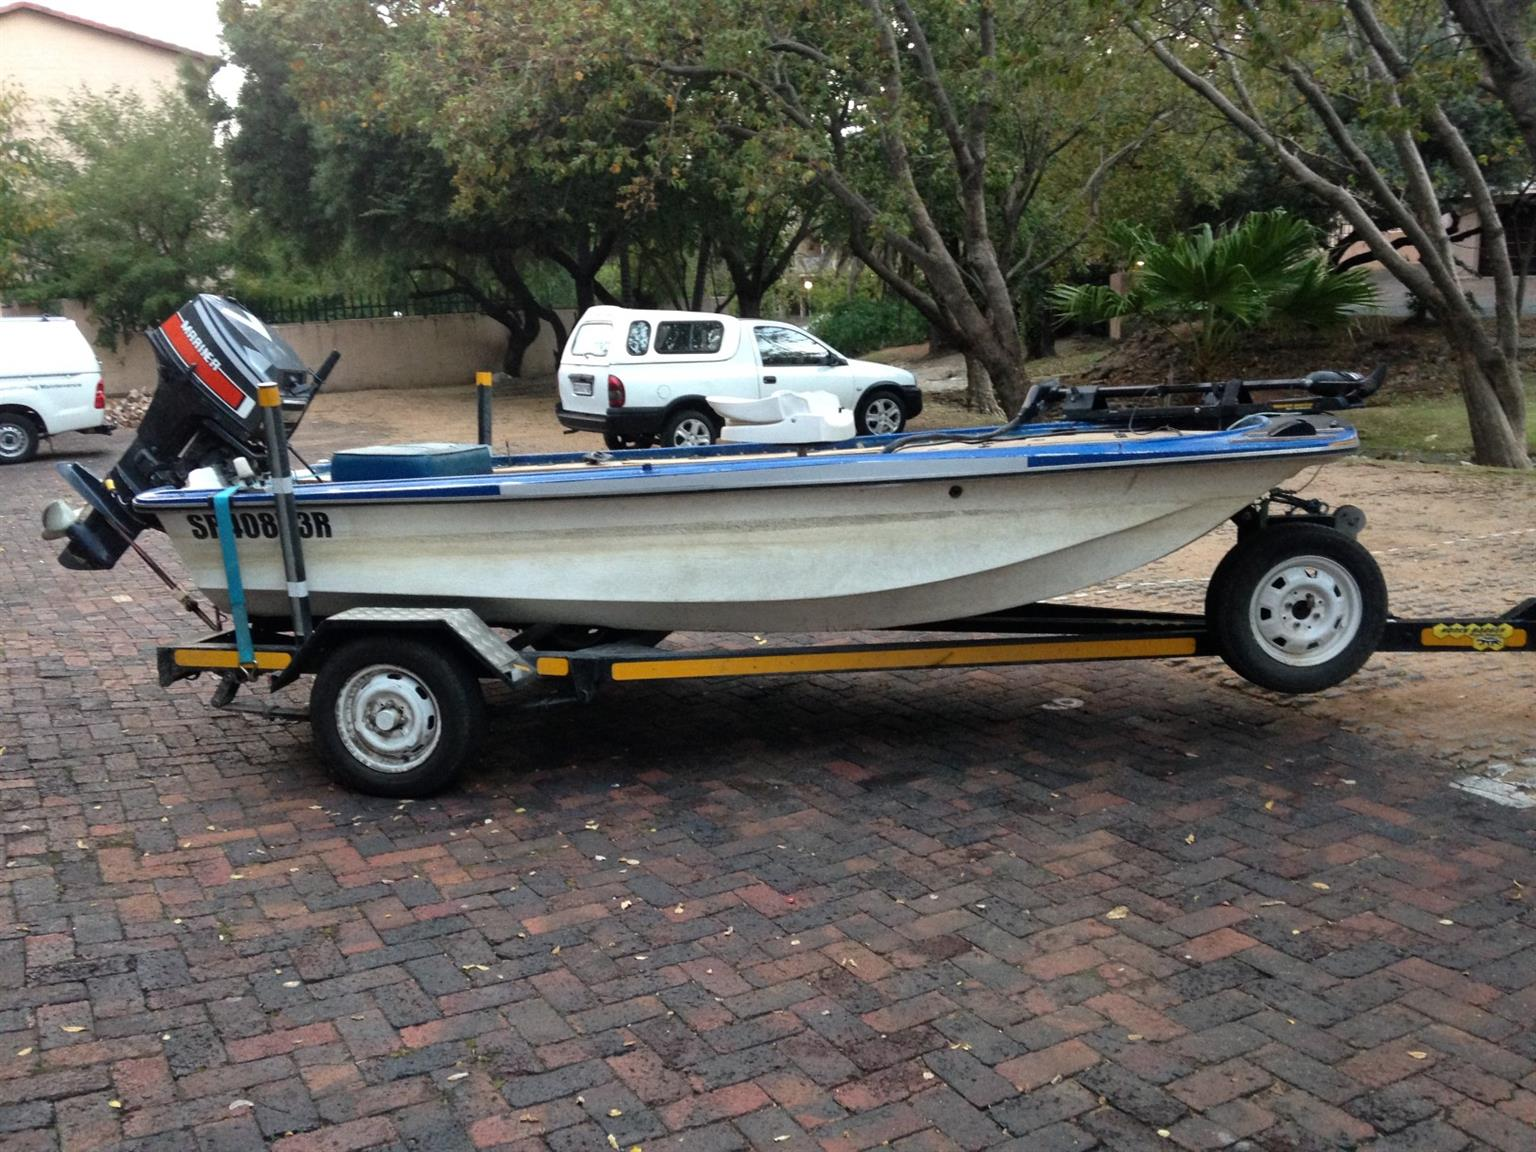 14ft St Lucia hull with 40hp Mariner (Yamaha) motor, plus extras